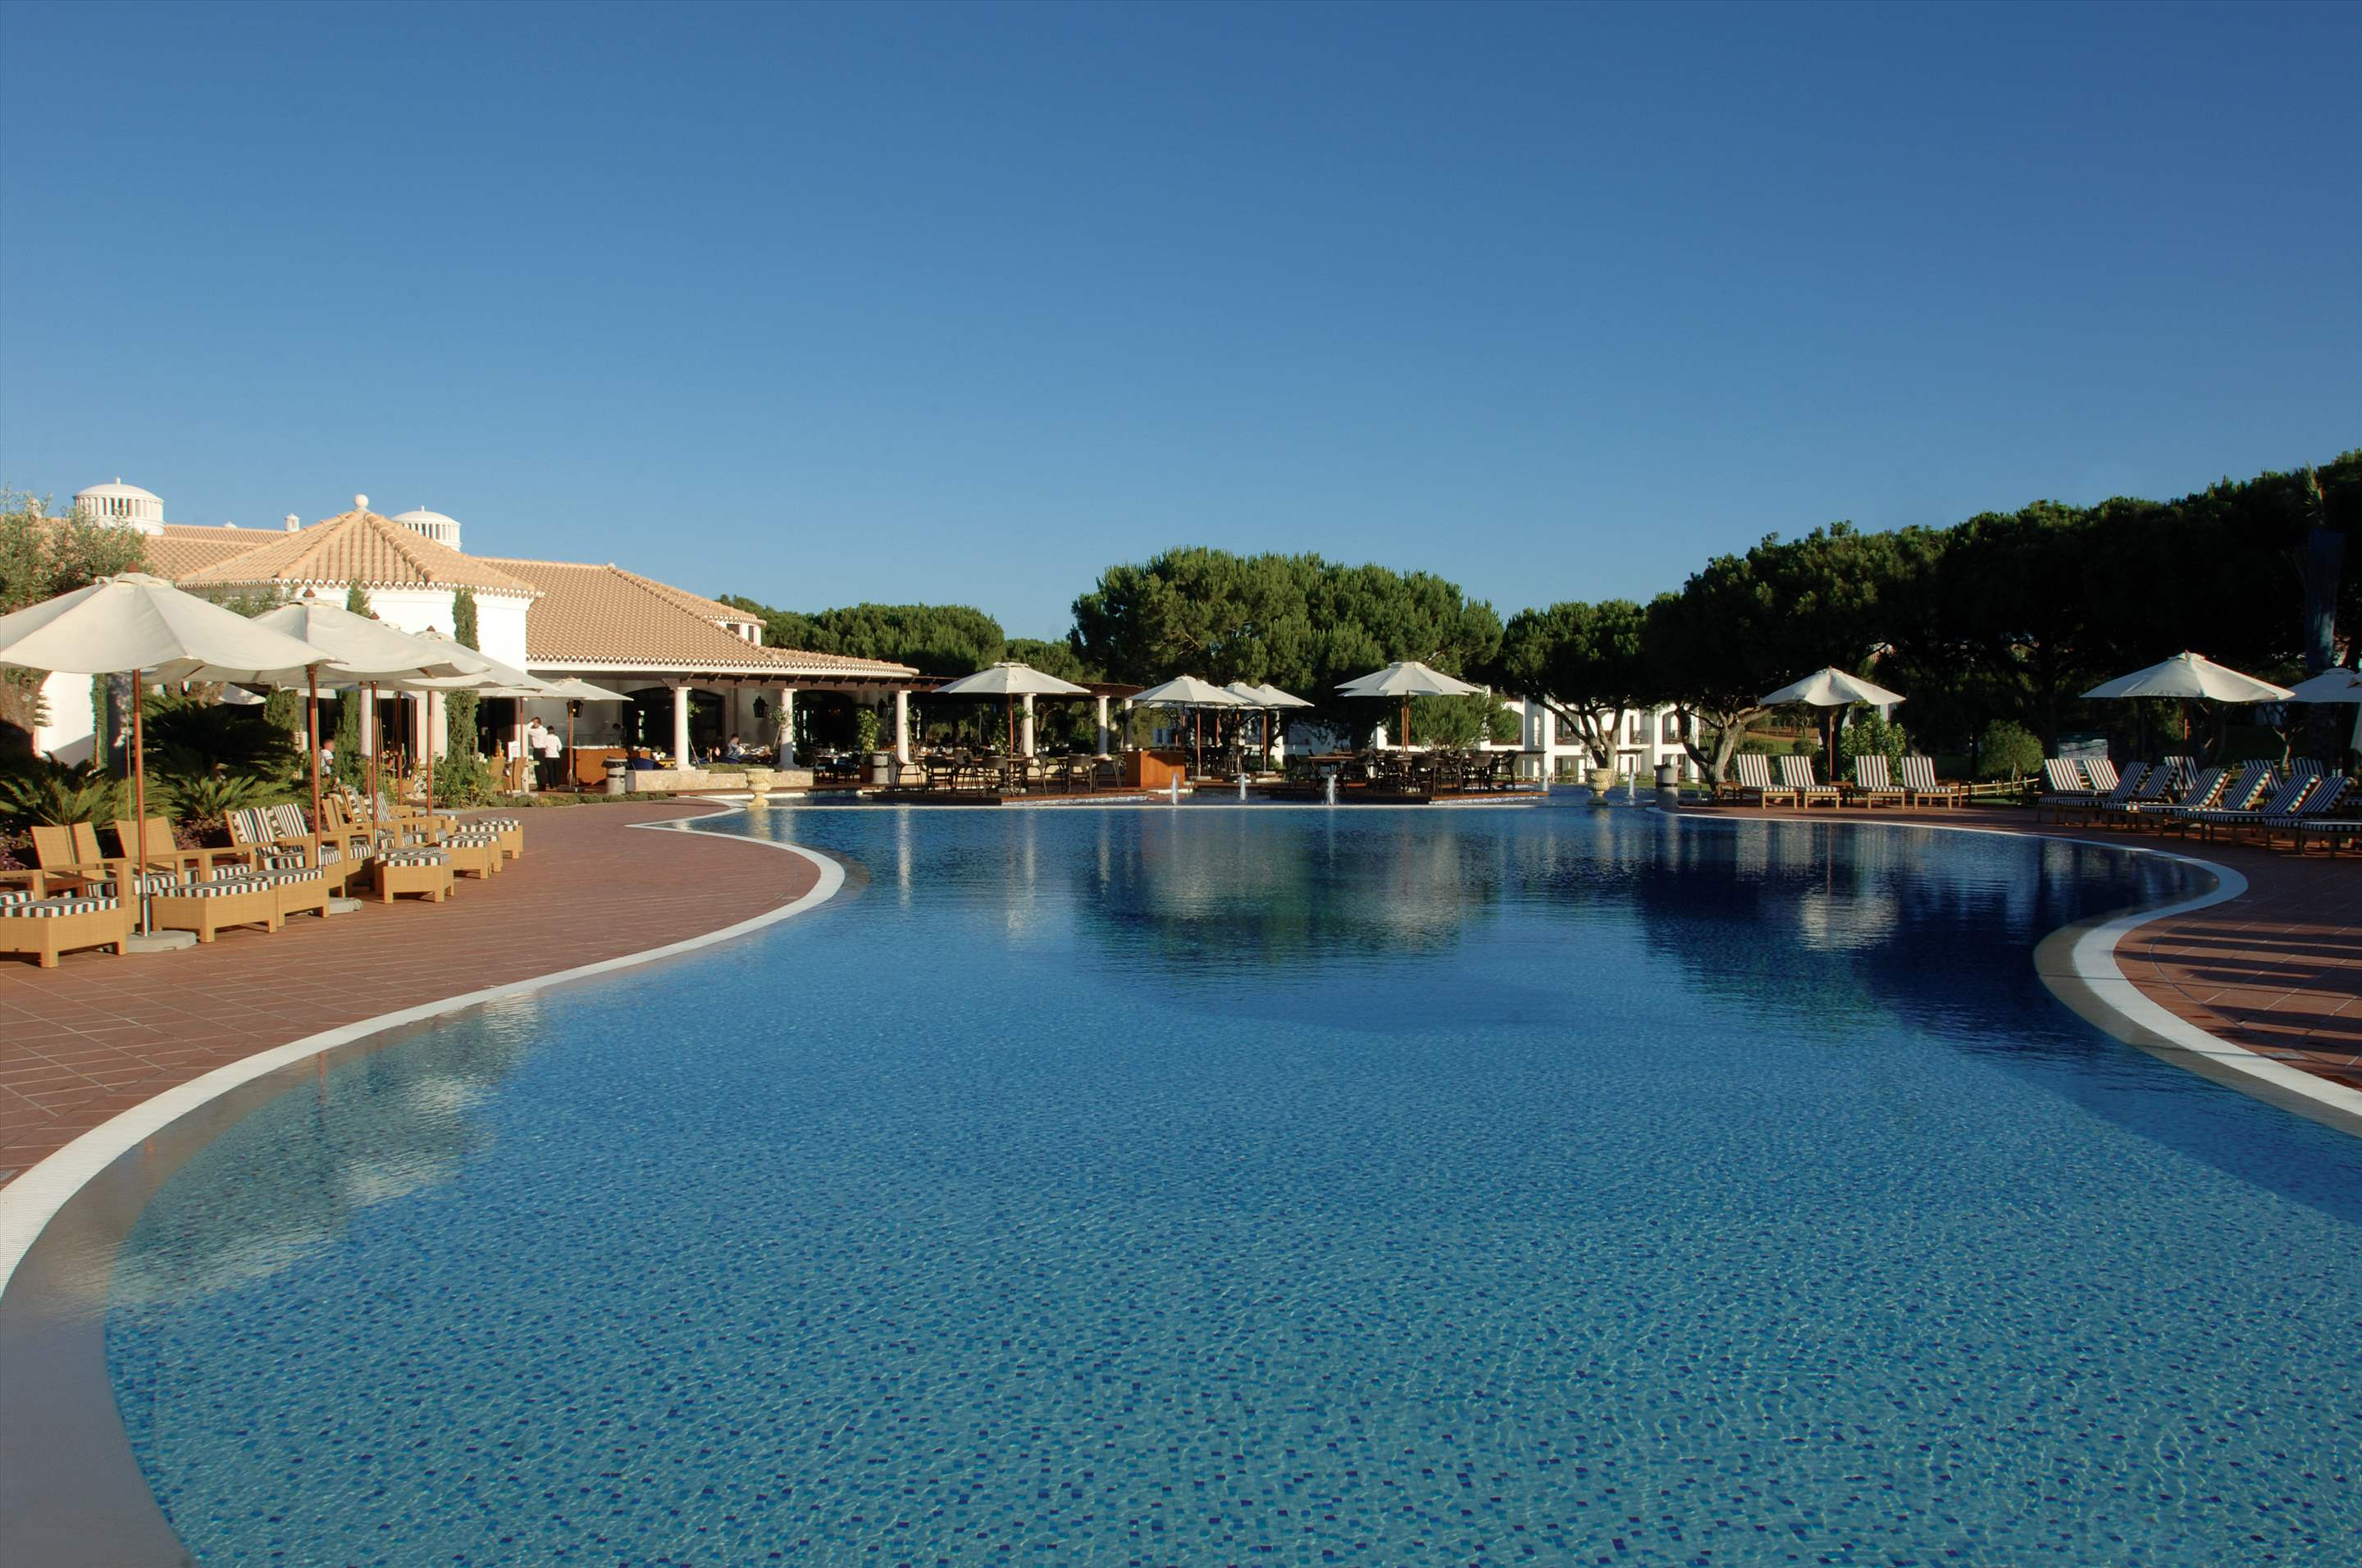 Pine Cliffs Villa Aurora, 4 bedroom villa in Pine Cliffs Resort, Algarve Photo #30